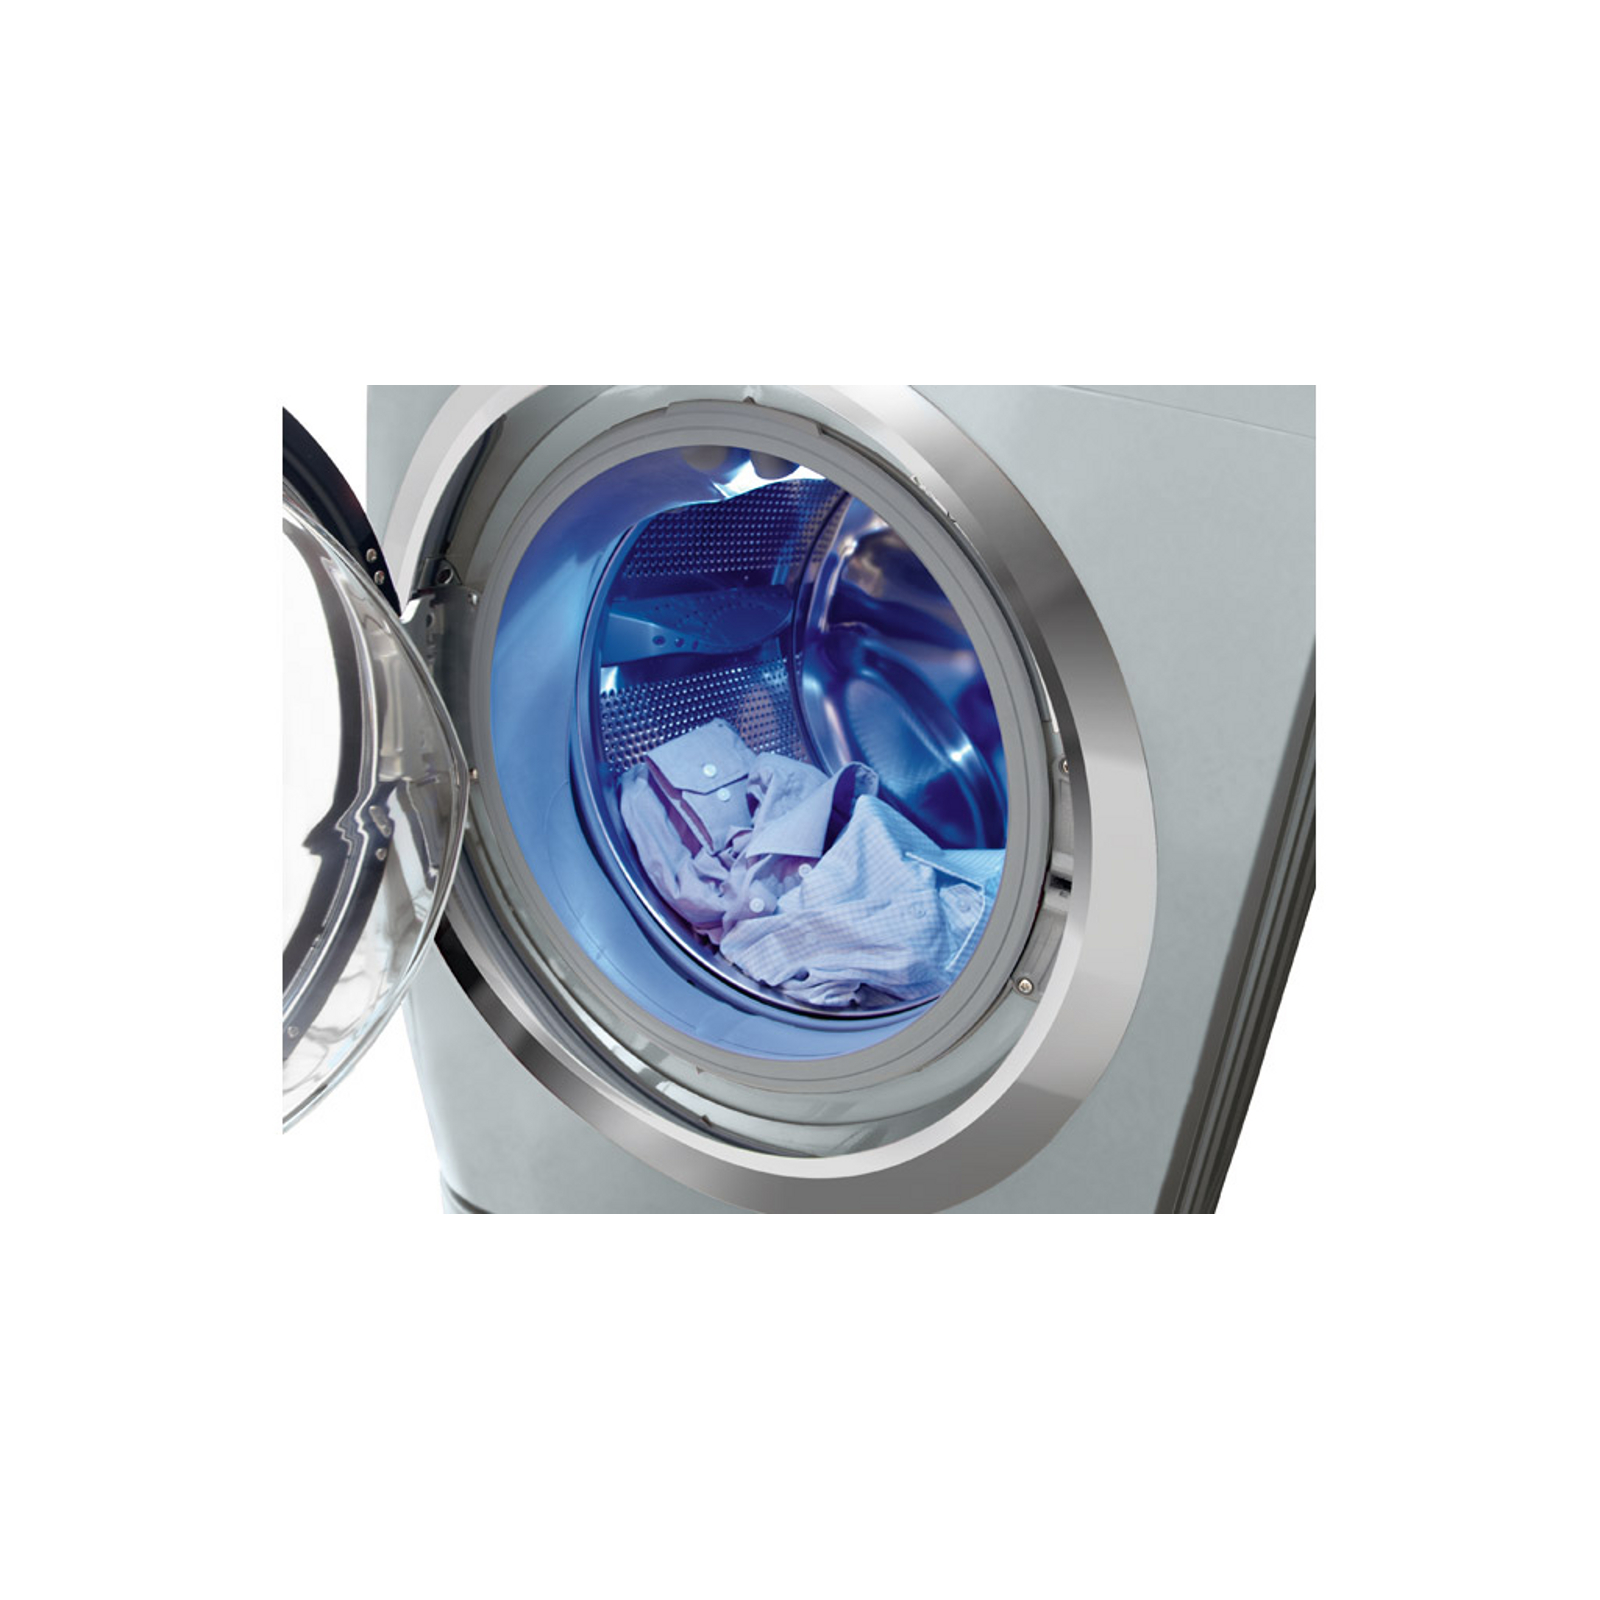 Electrolux EWFLS70JSS 4.4 cu. ft. Steam Front-Load Washing Machine - Silver Sands